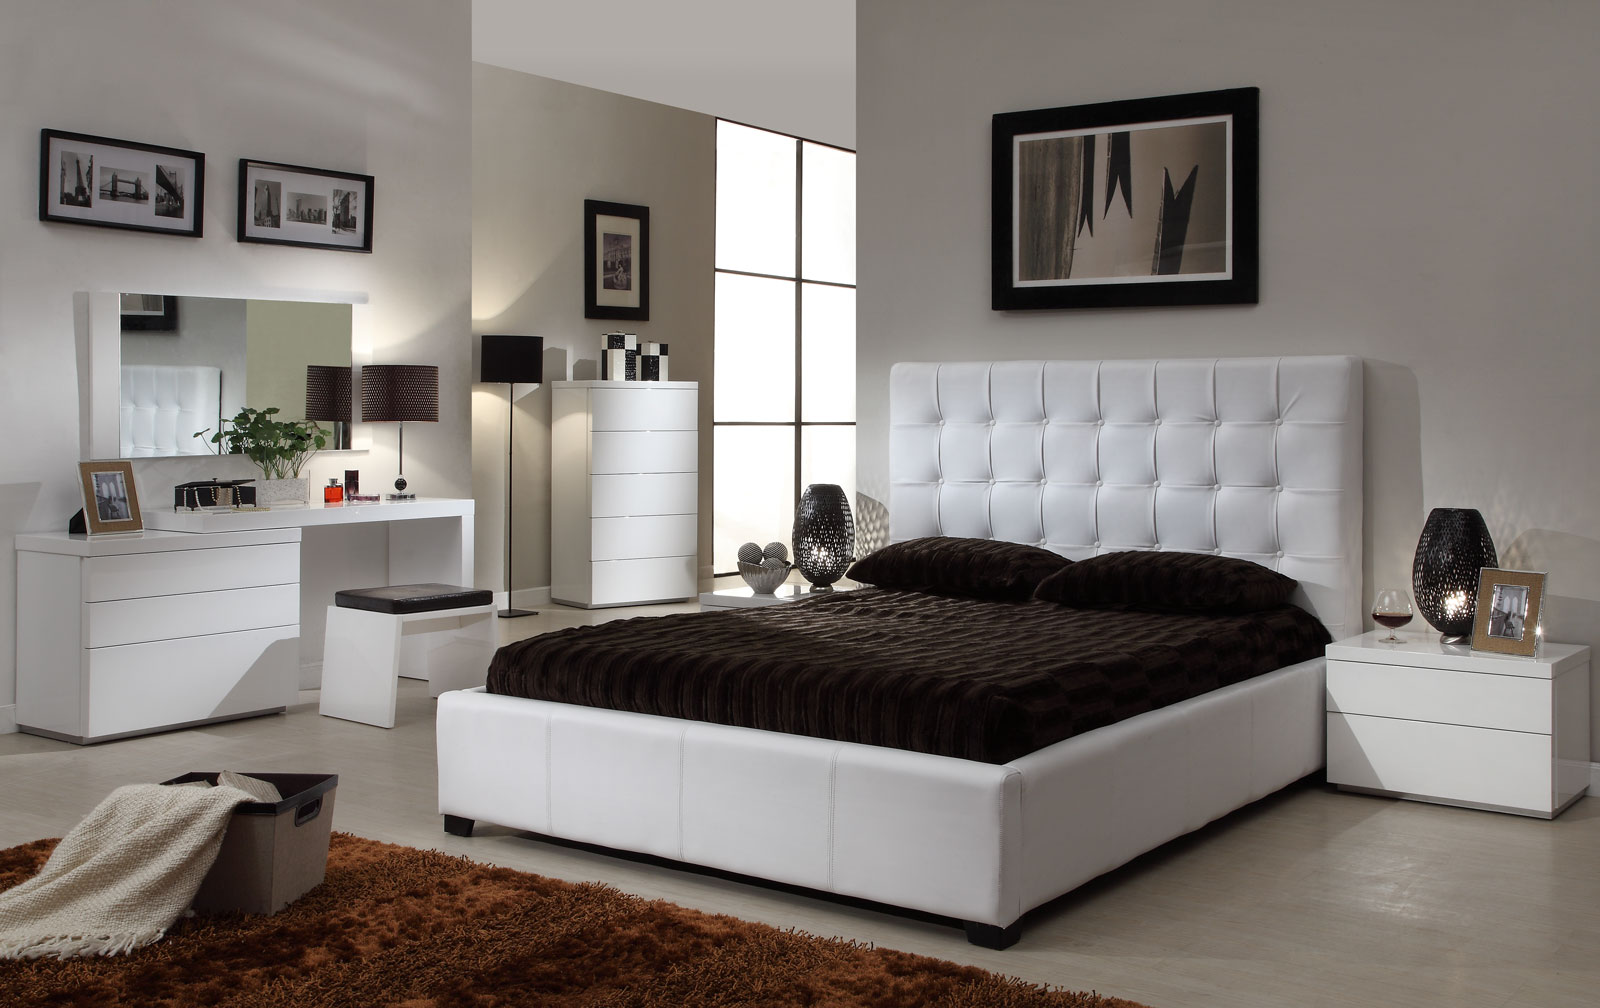 Full Size of Bedroom Black Master Bedroom Furniture Queen Size Bed Bedroom  Set Queen Bedroom Furniture